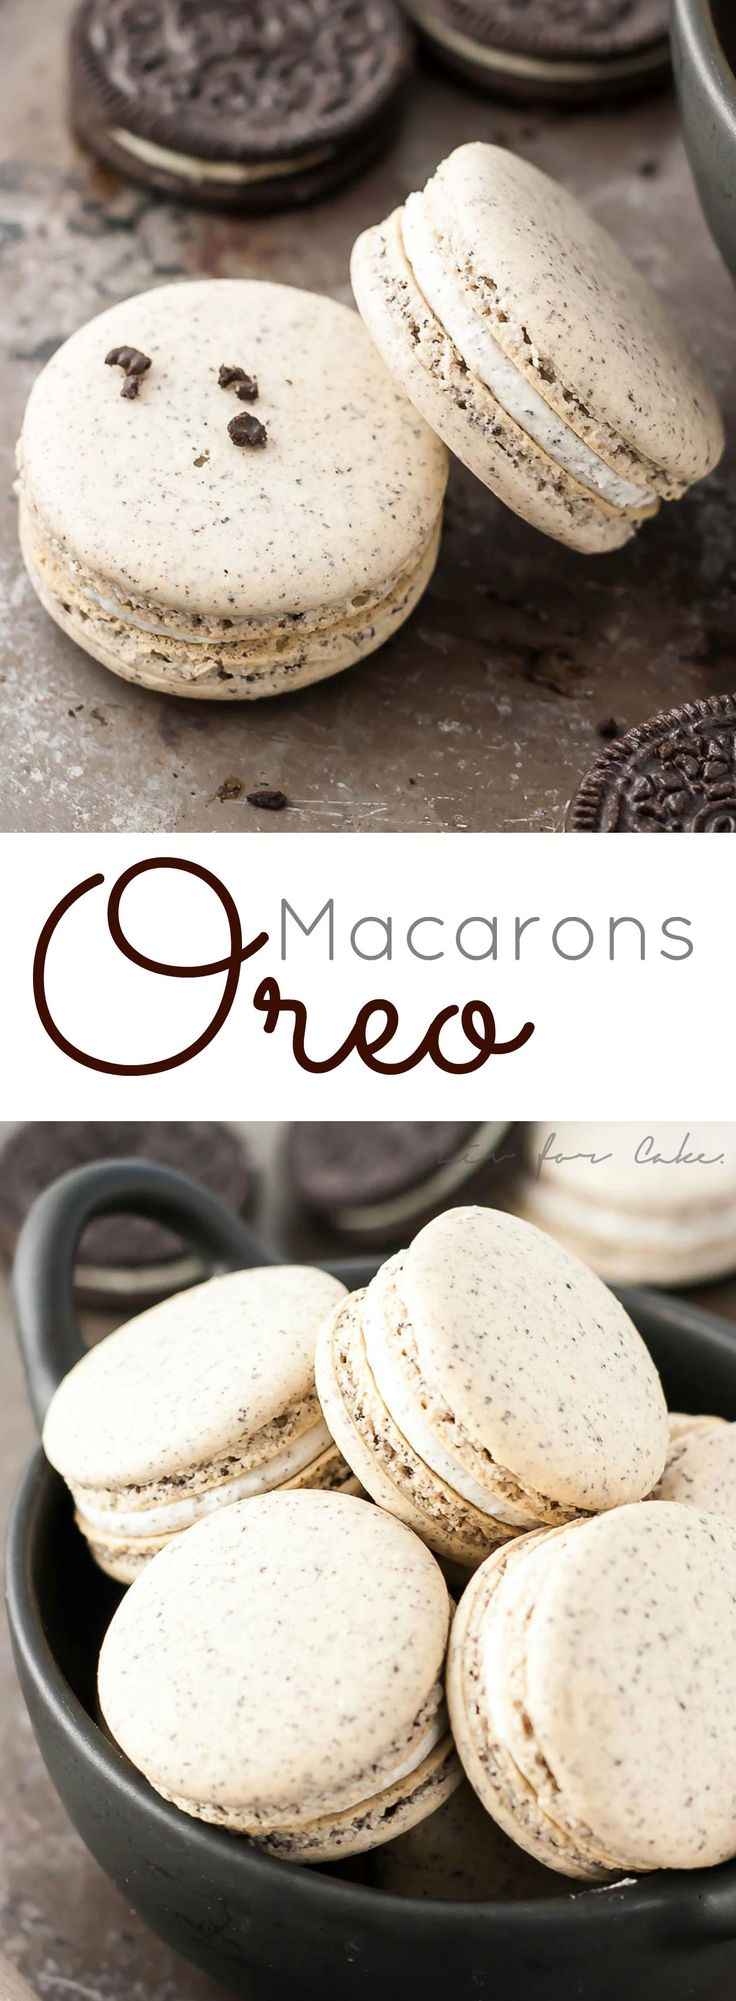 Make your favourite store-bought classics into something more decadent with these delicate Oreo macarons. | livforcake.com via @livforcake